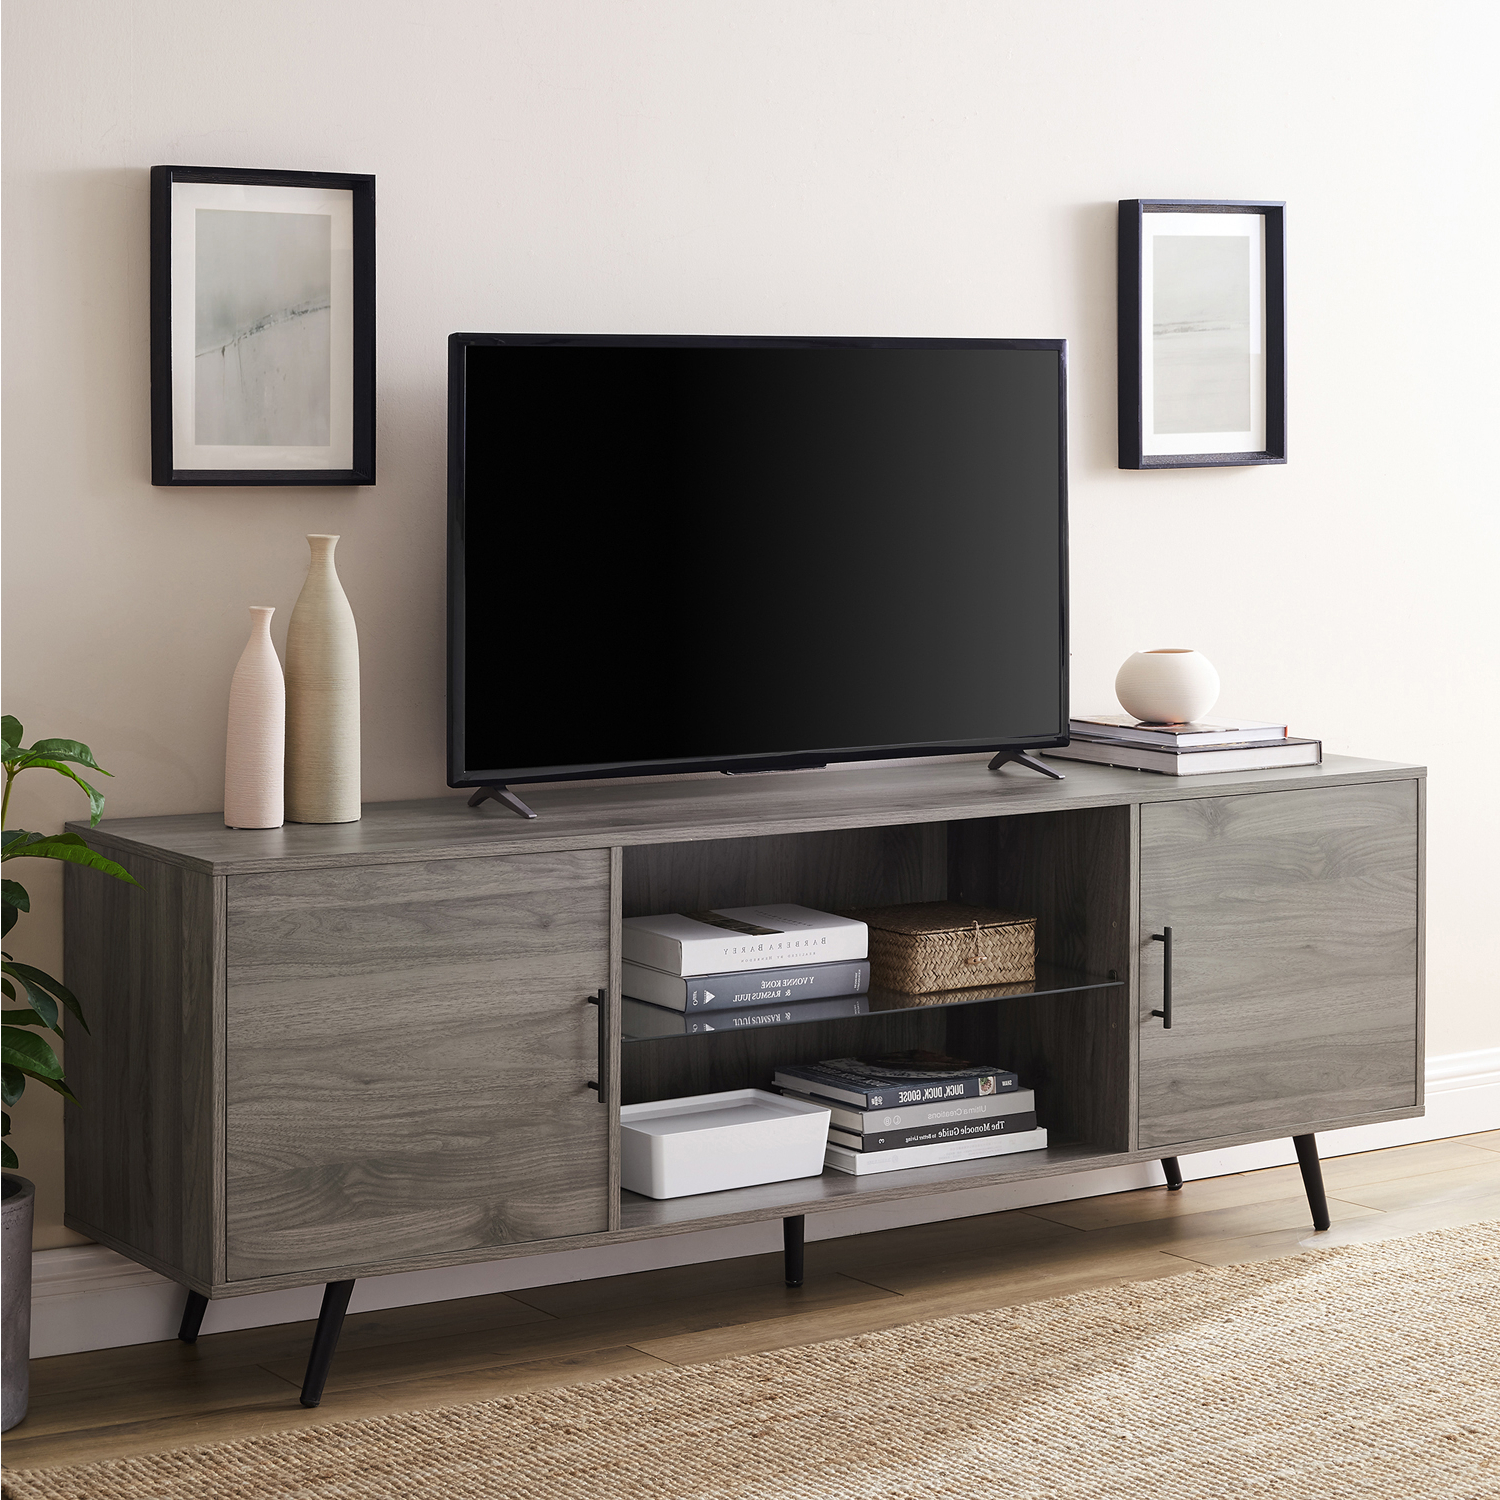 Greenwich Wide Tv Stands Within Current Wide Tv Stand With Glass Shelf – Pier (View 7 of 10)